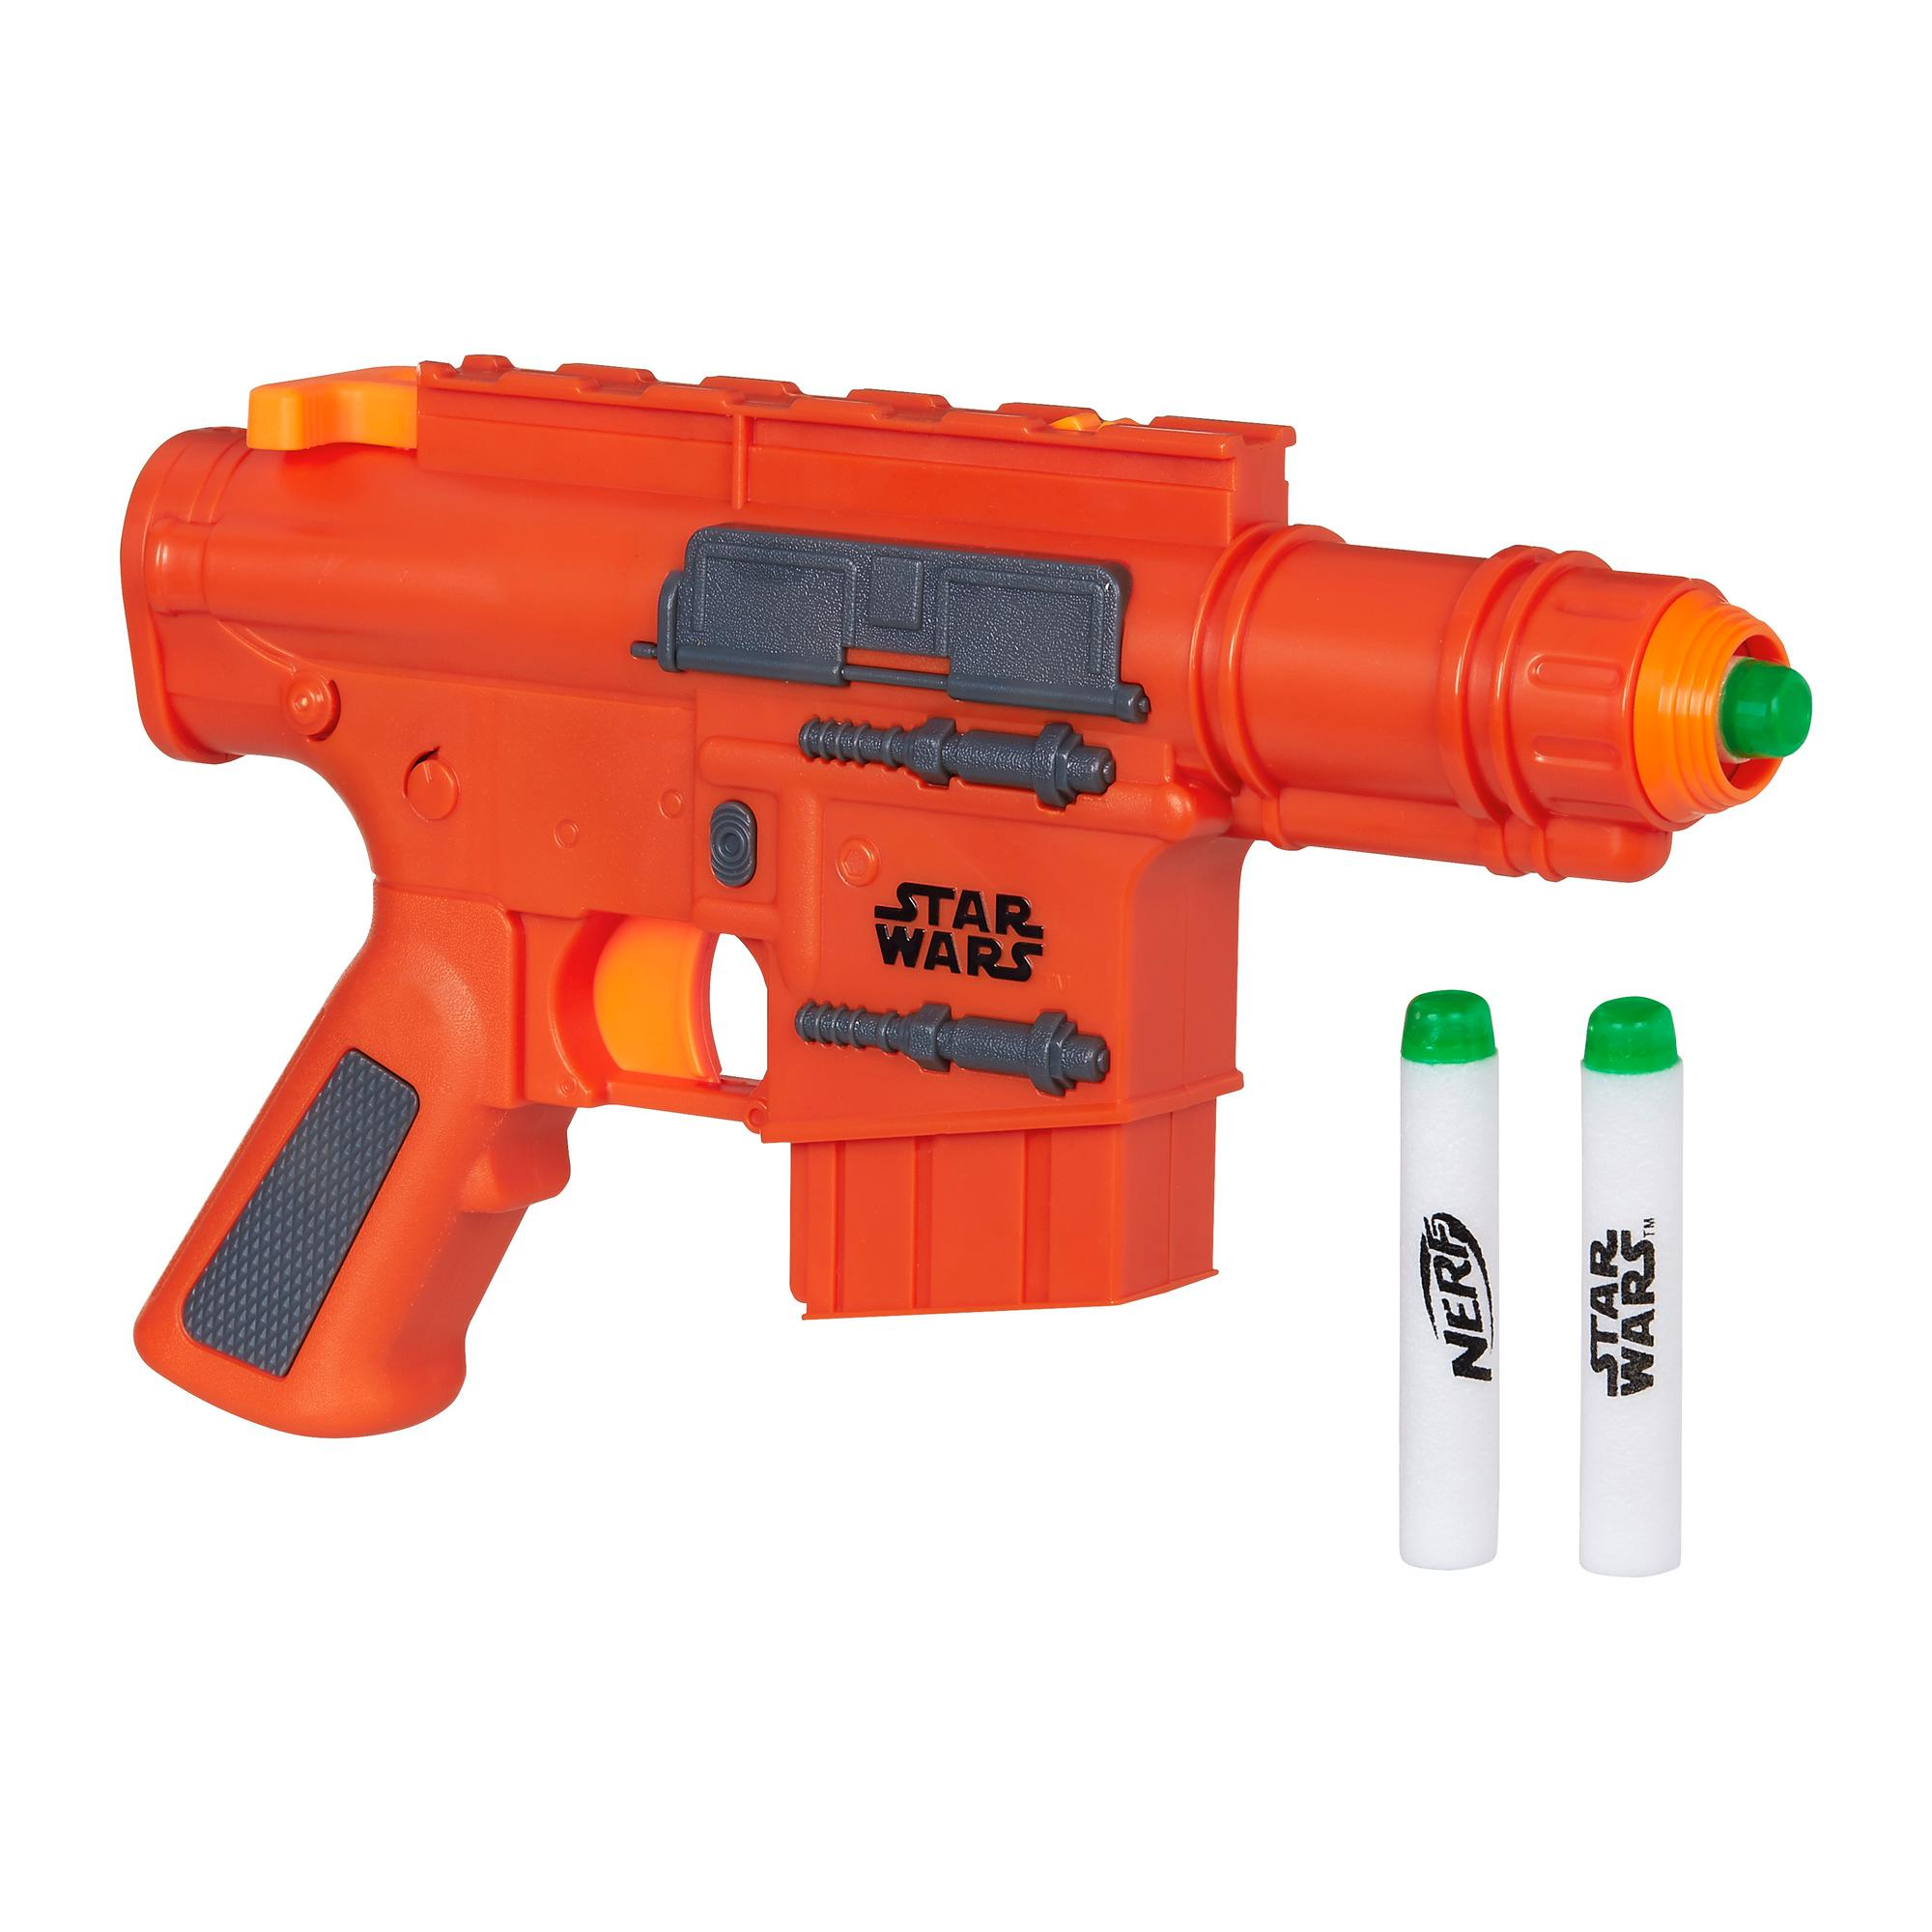 In case you've never seen a Nerf gun, they are marvels of toy engineering.  Basically, they shoot lightweight darts (think a swimming pool noodle about  the ...